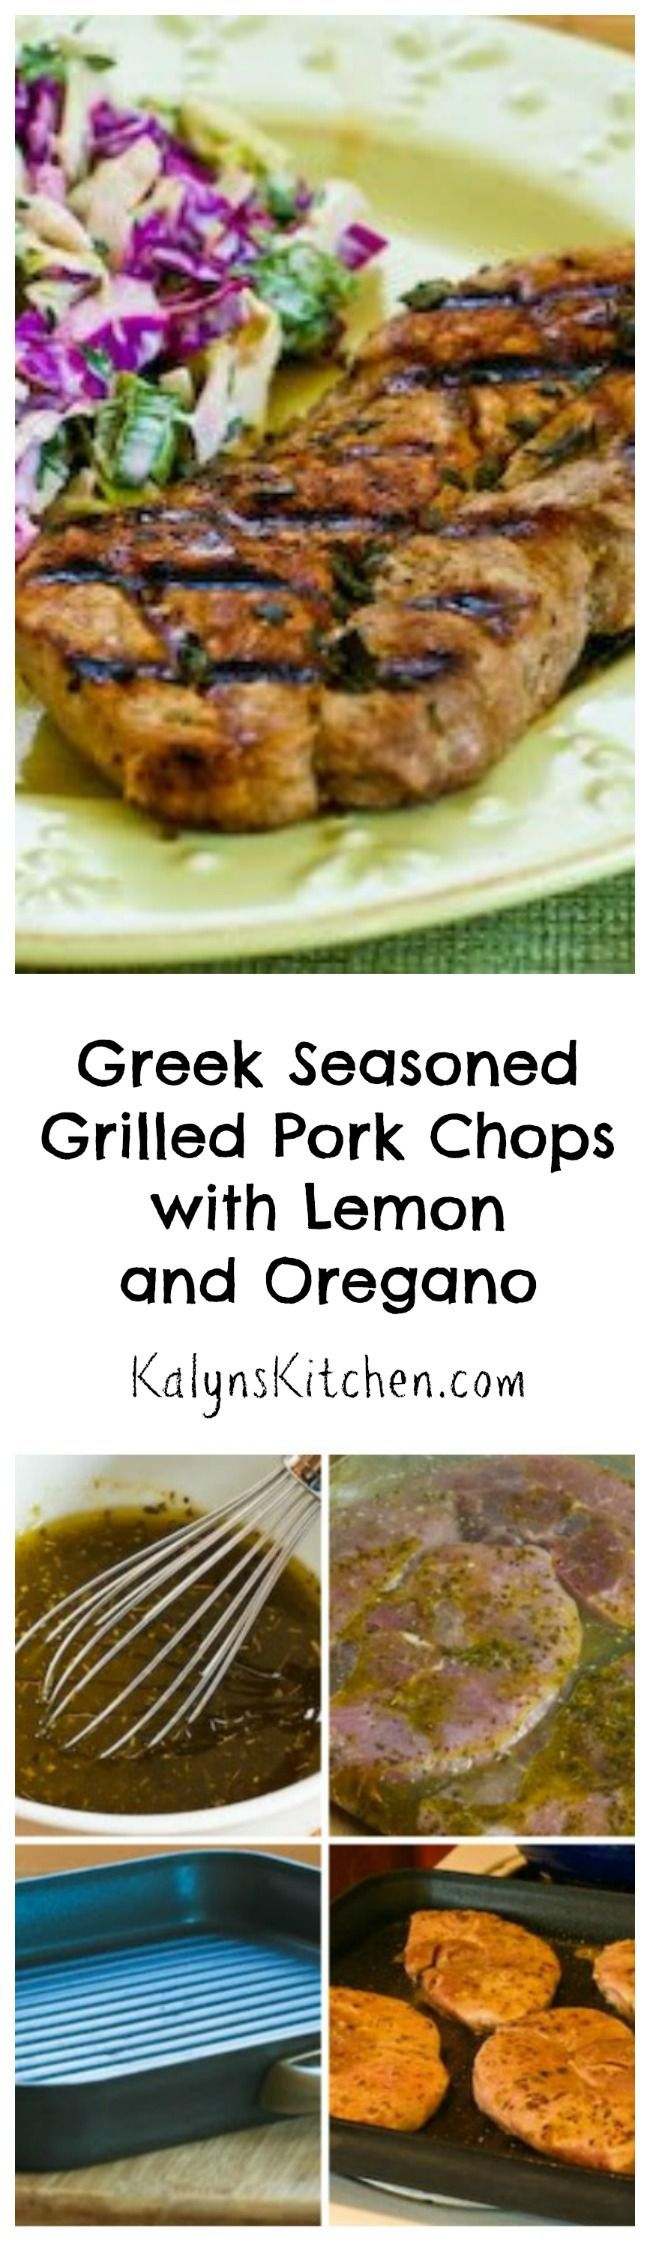 Greek Seasoned Grilled Pork Chops with Lemon and Oregano have all the flavors that make Greek Souvlaki so popular.  You can cook this on an outdoor grill, or use a grill pan on top of the stove for this recipe that's Low-Carb, Gluten-Free, and Paleo. [from KalynsKitchen.com]